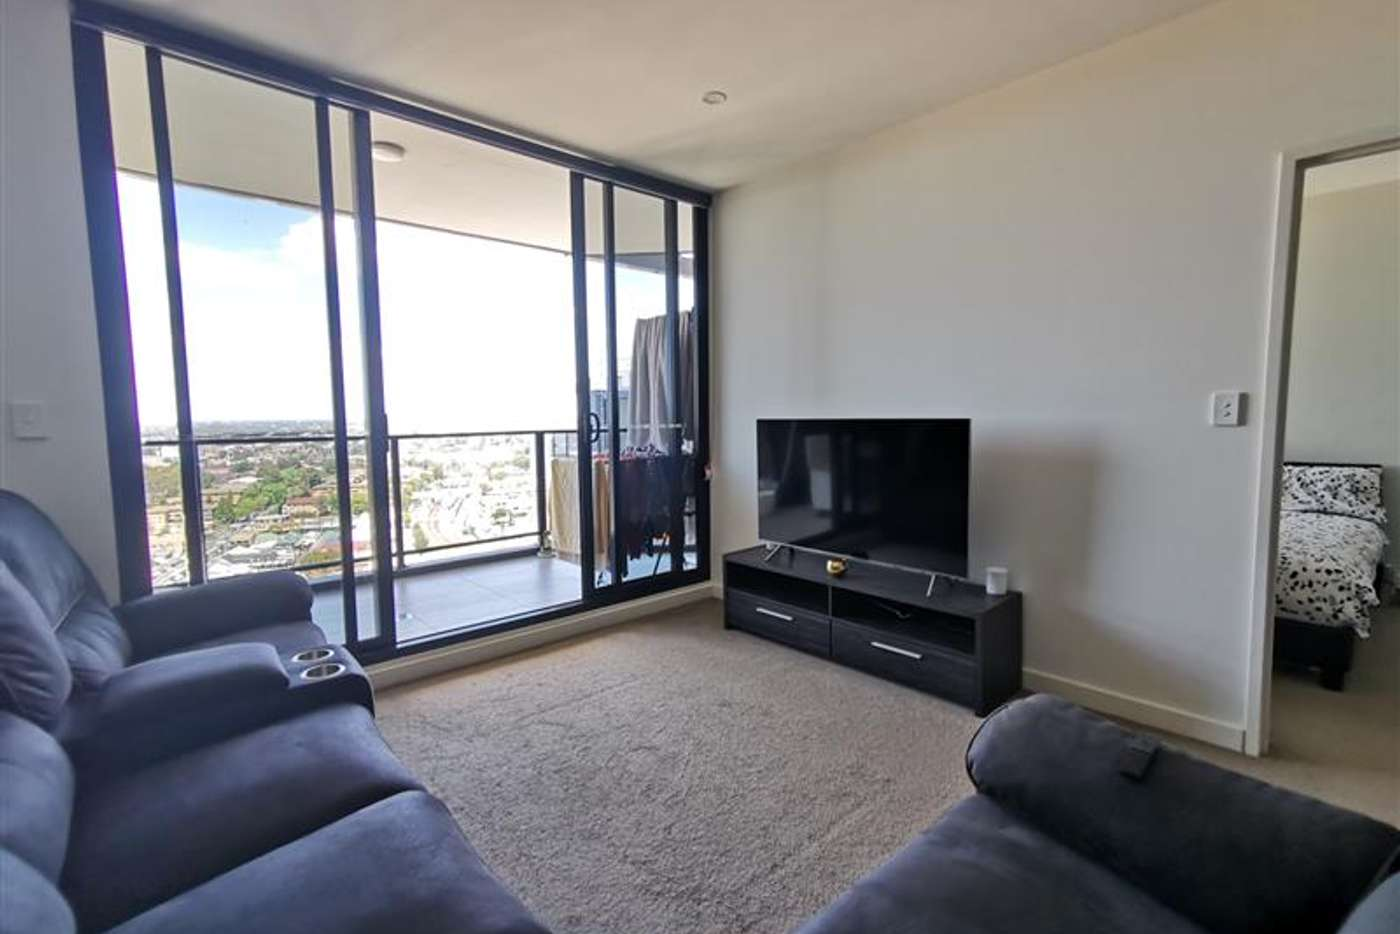 Seventh view of Homely apartment listing, 2105/11 Hassall St, Parramatta NSW 2150